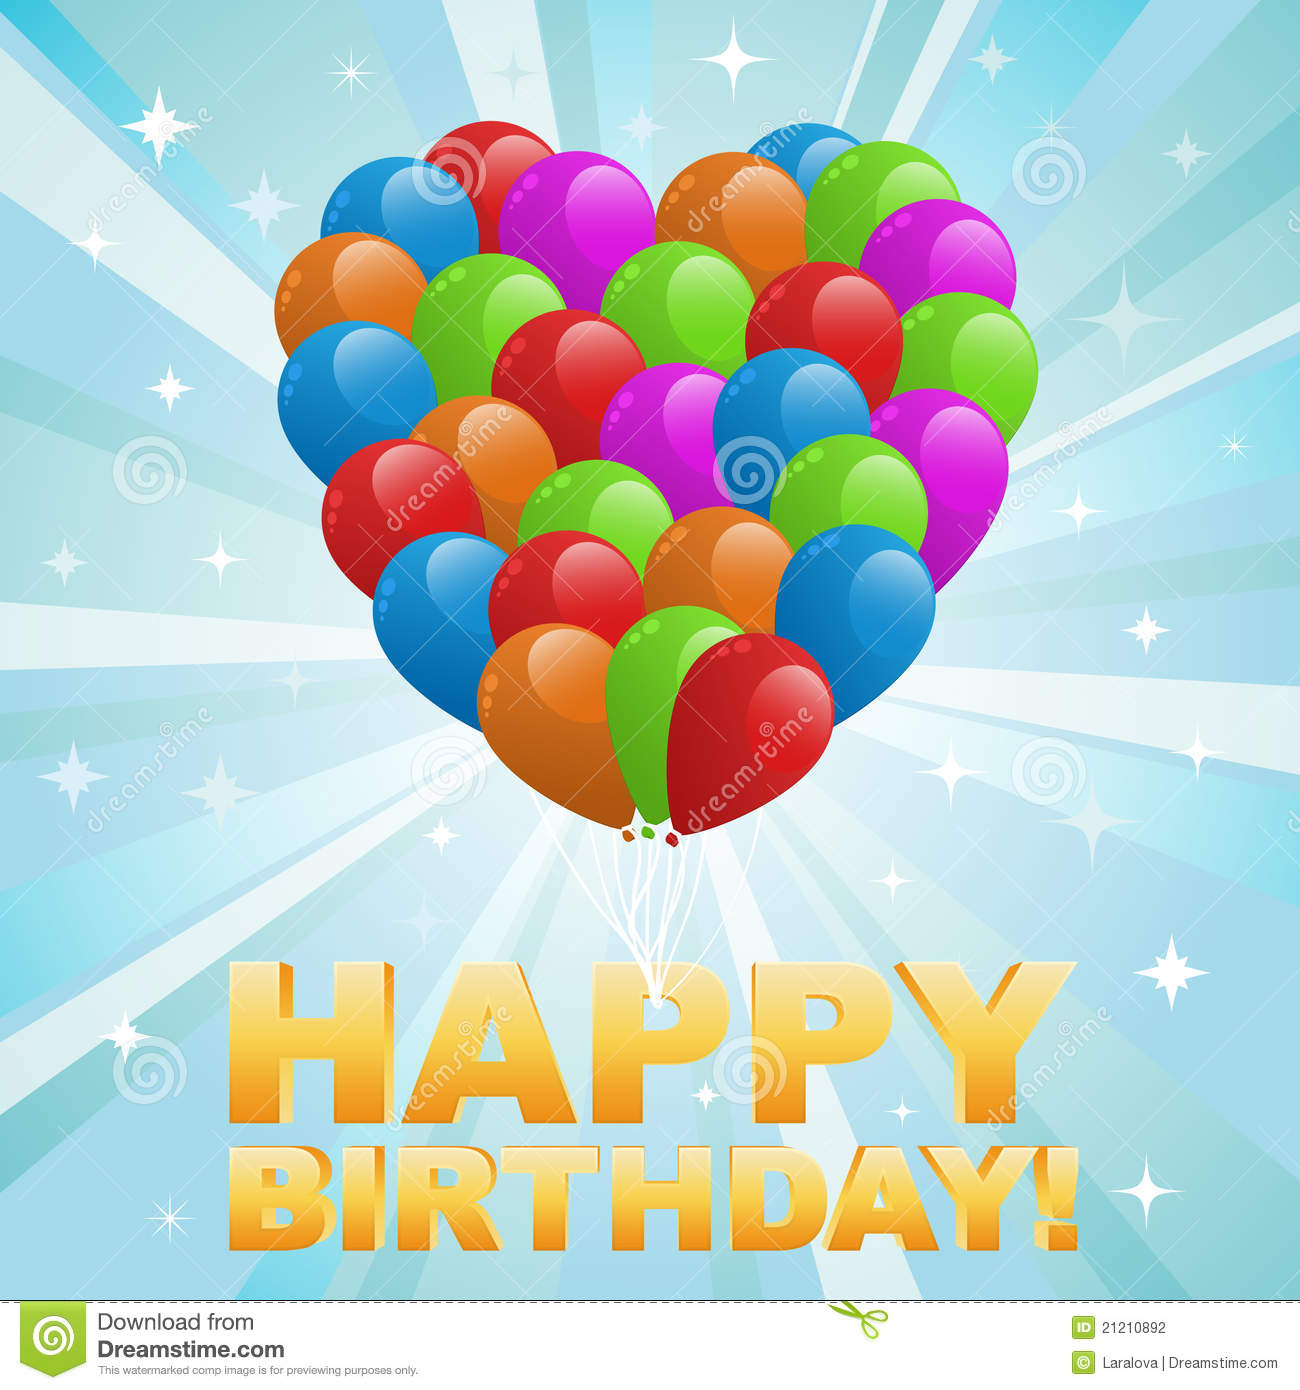 Happy Birthday Card Balloons And Confetti Vector Image – Birthday Cards Balloons